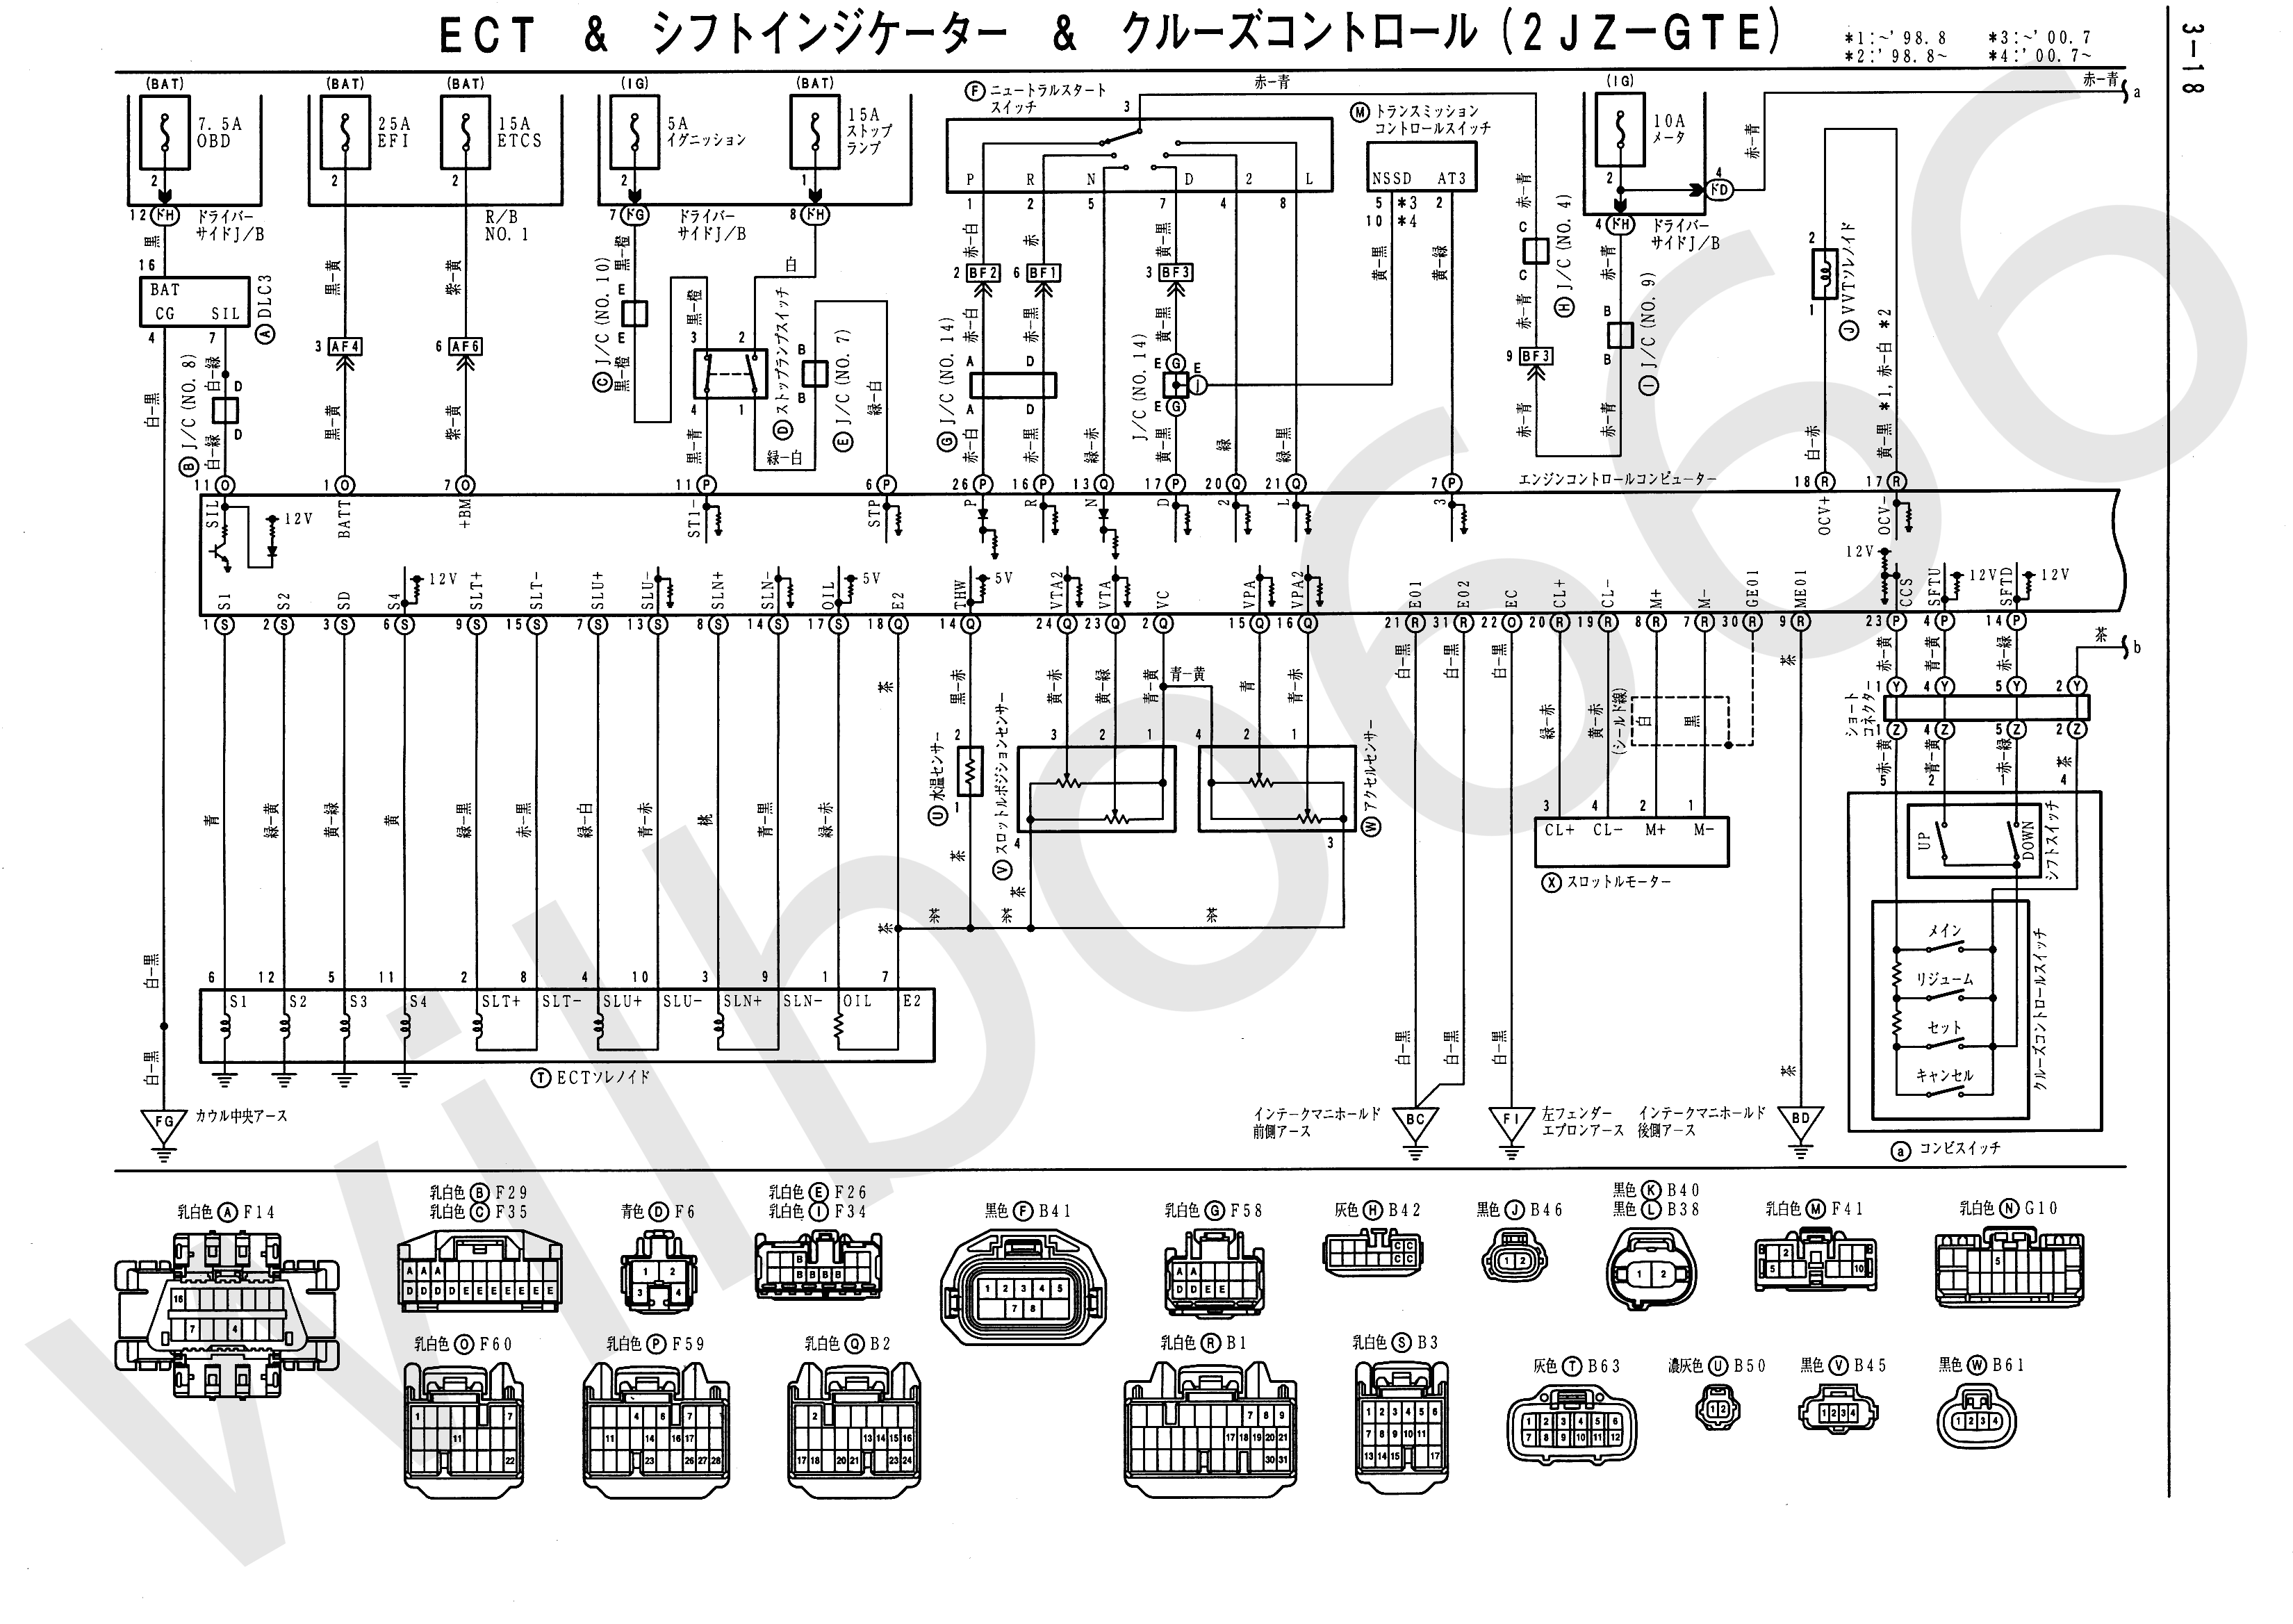 Wilbo666 2jz Gte Vvti Jzs161 Aristo Engine Wiring Two Wire Alternator Diagram Nissan Toyota Diagrams